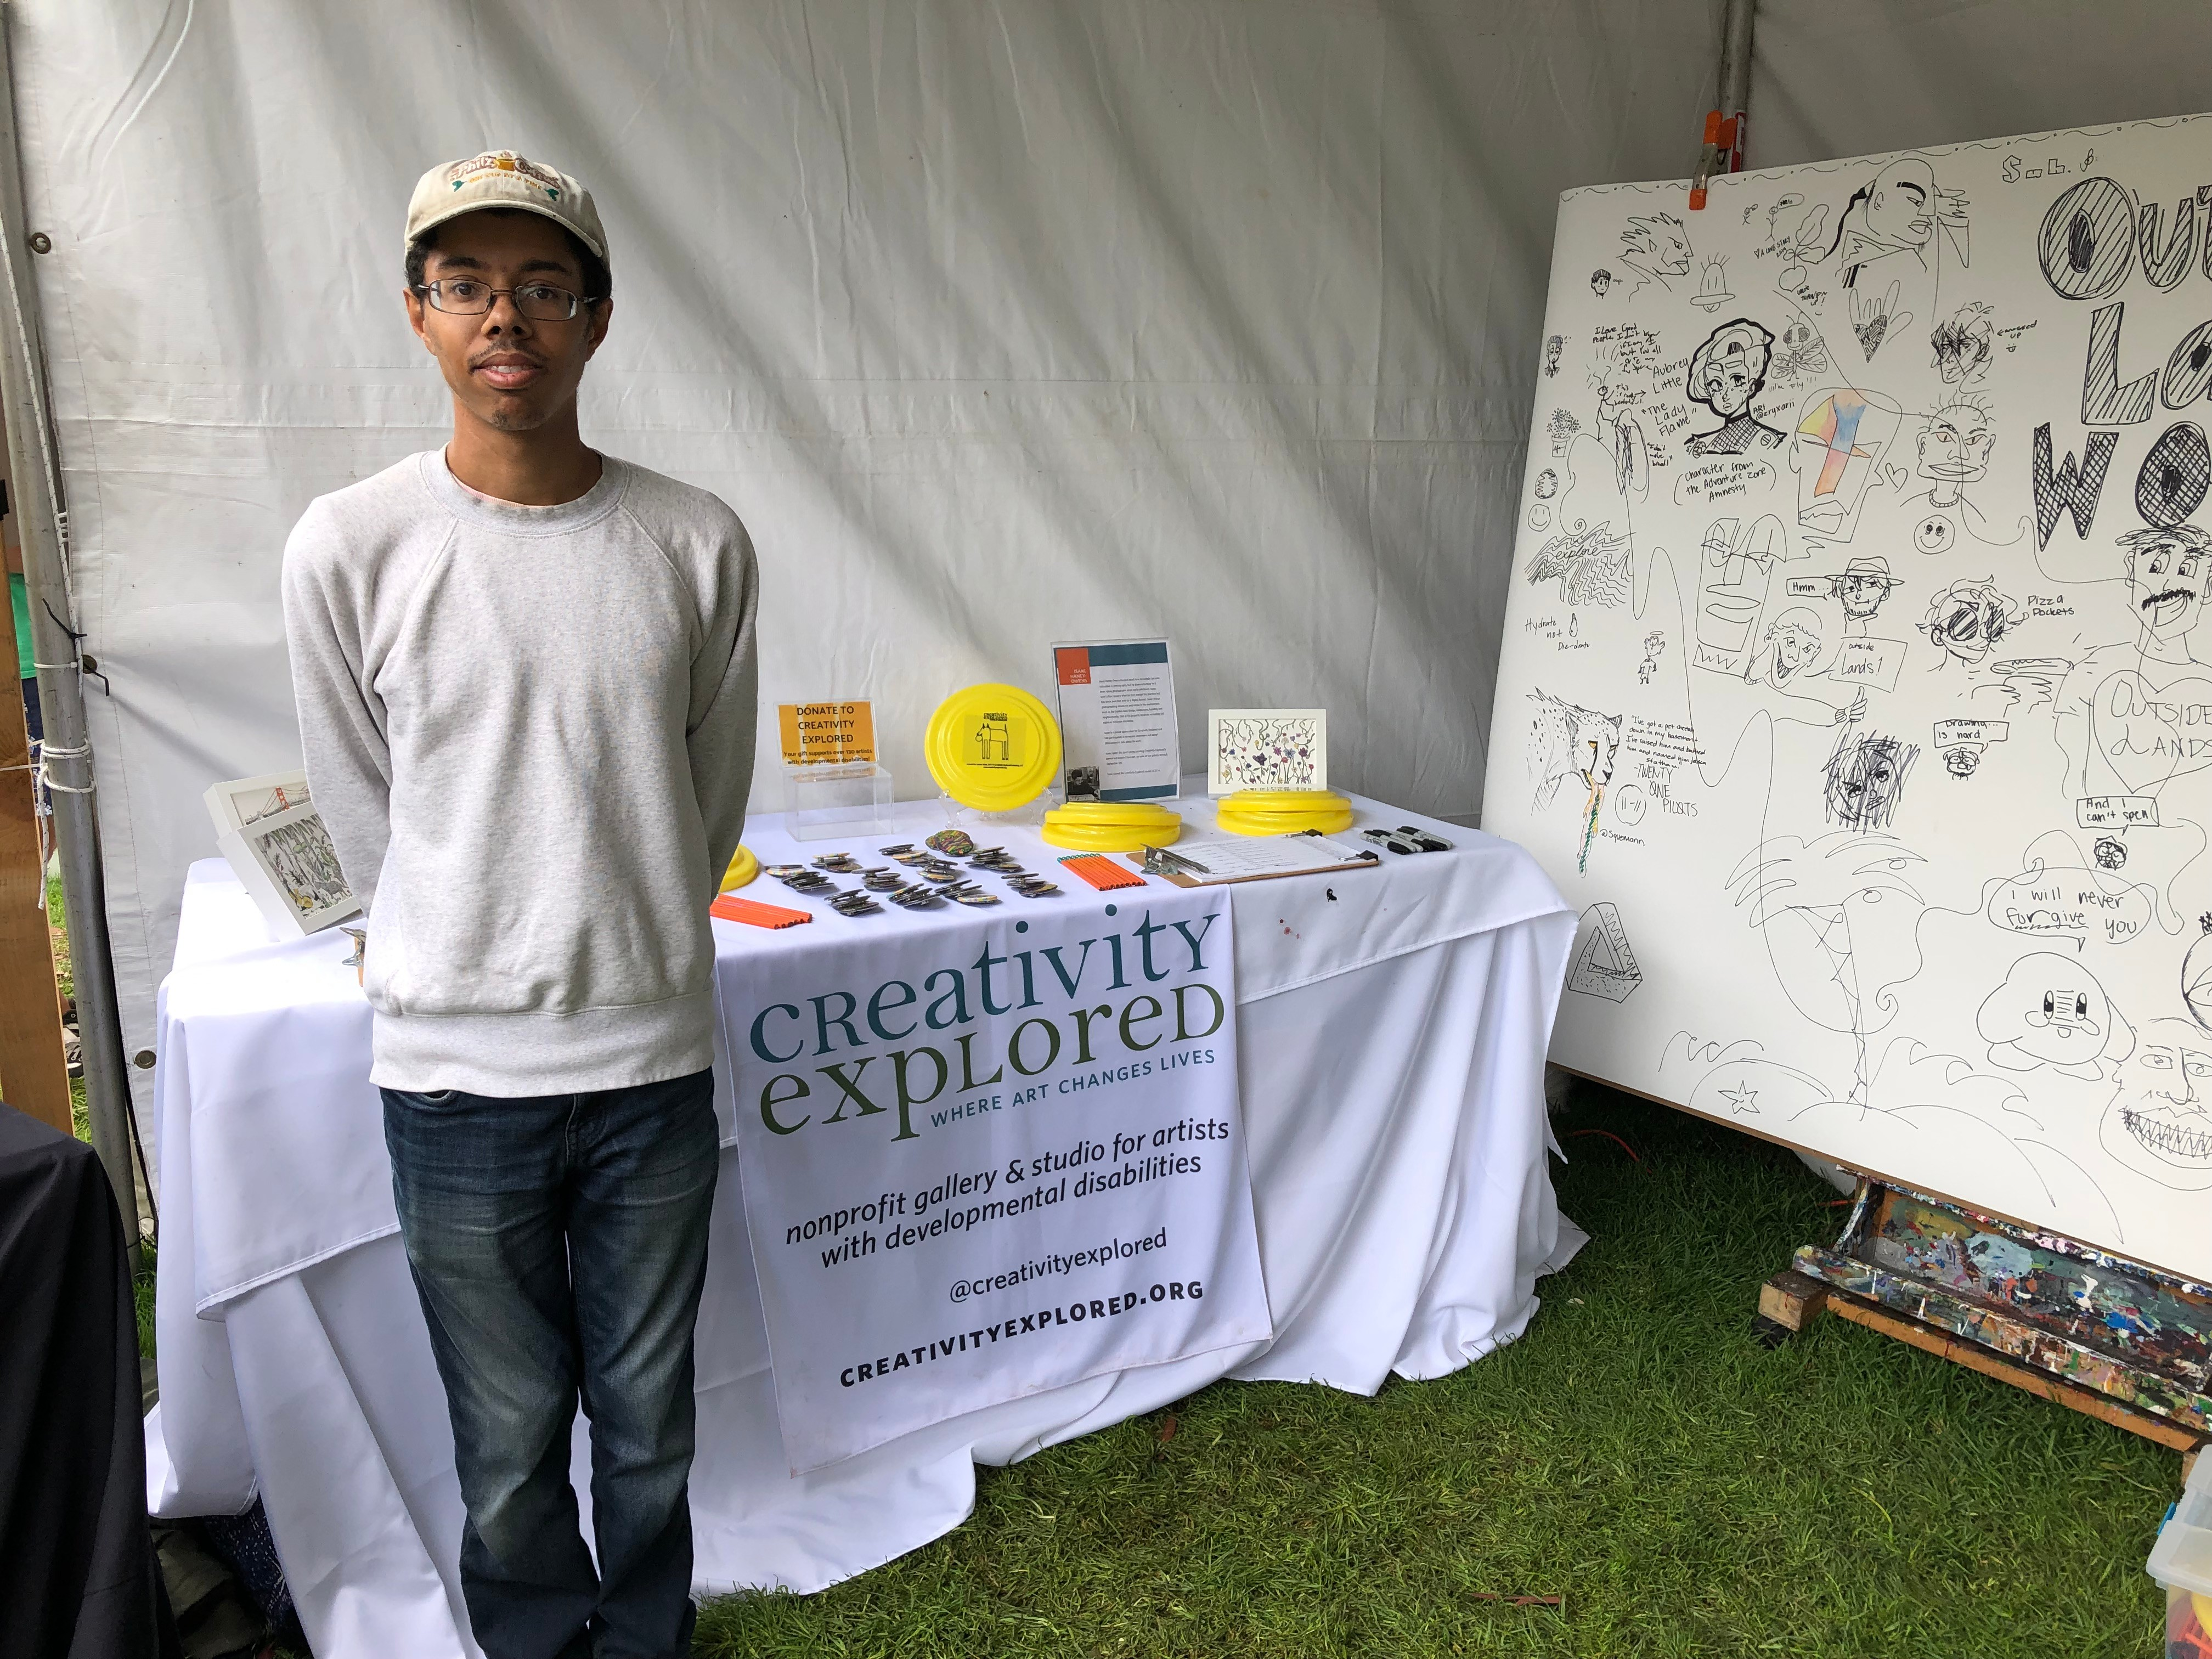 Isaac, black male smiling at camera, wearing glasses and a hat, standing in front of Creativity Explored table at event.